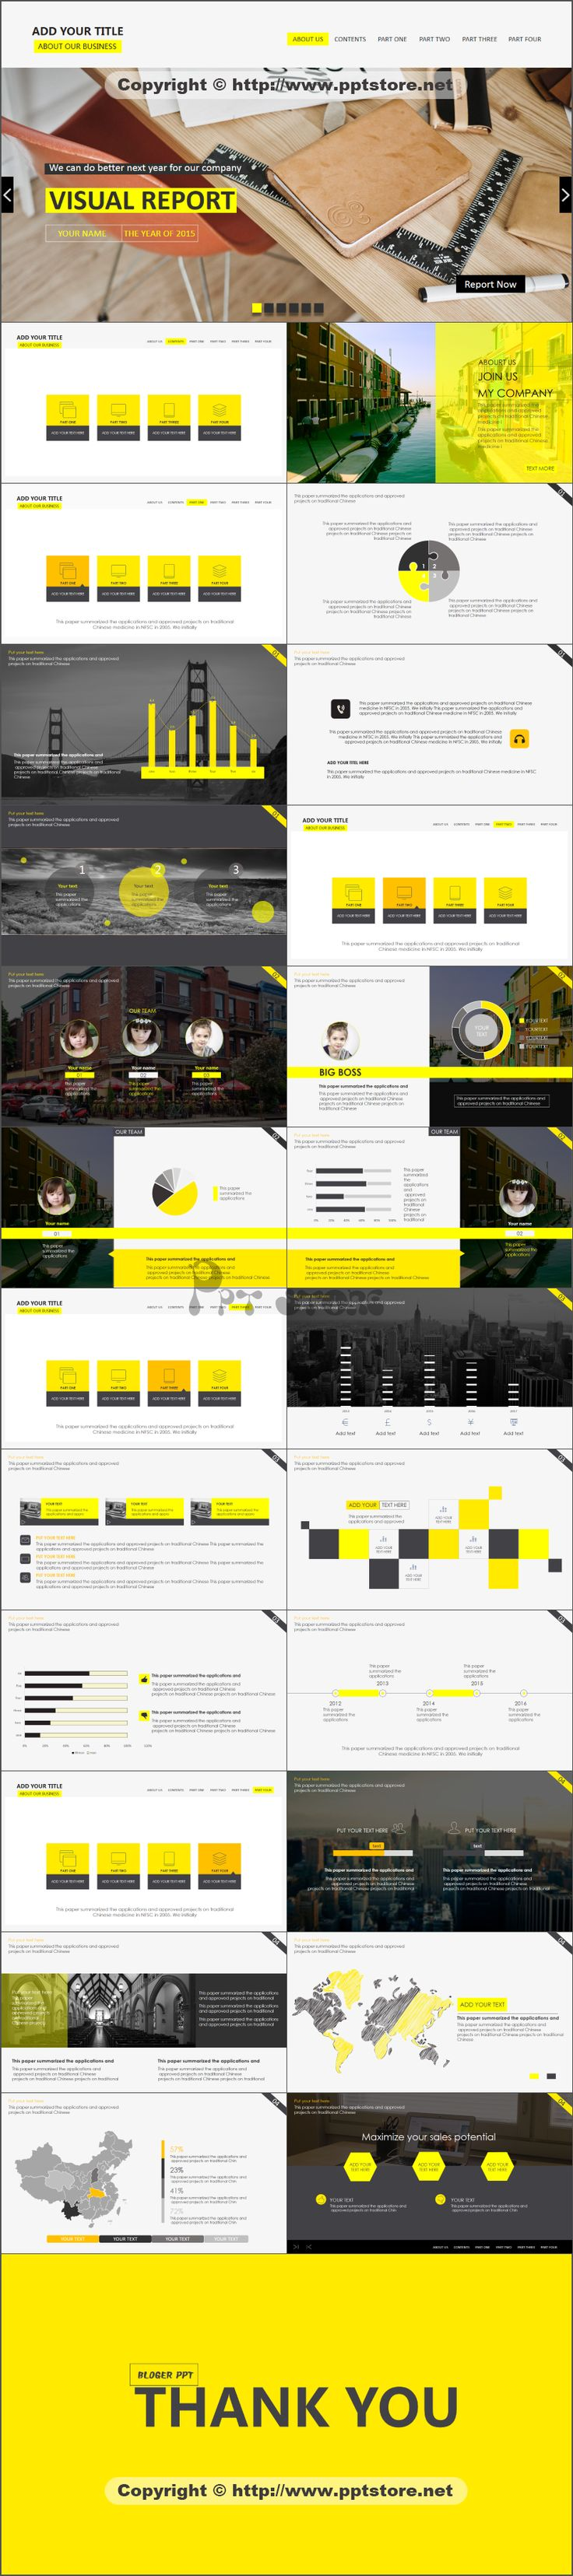 Graphic design ppt design templates layouts brochures role models template graphics